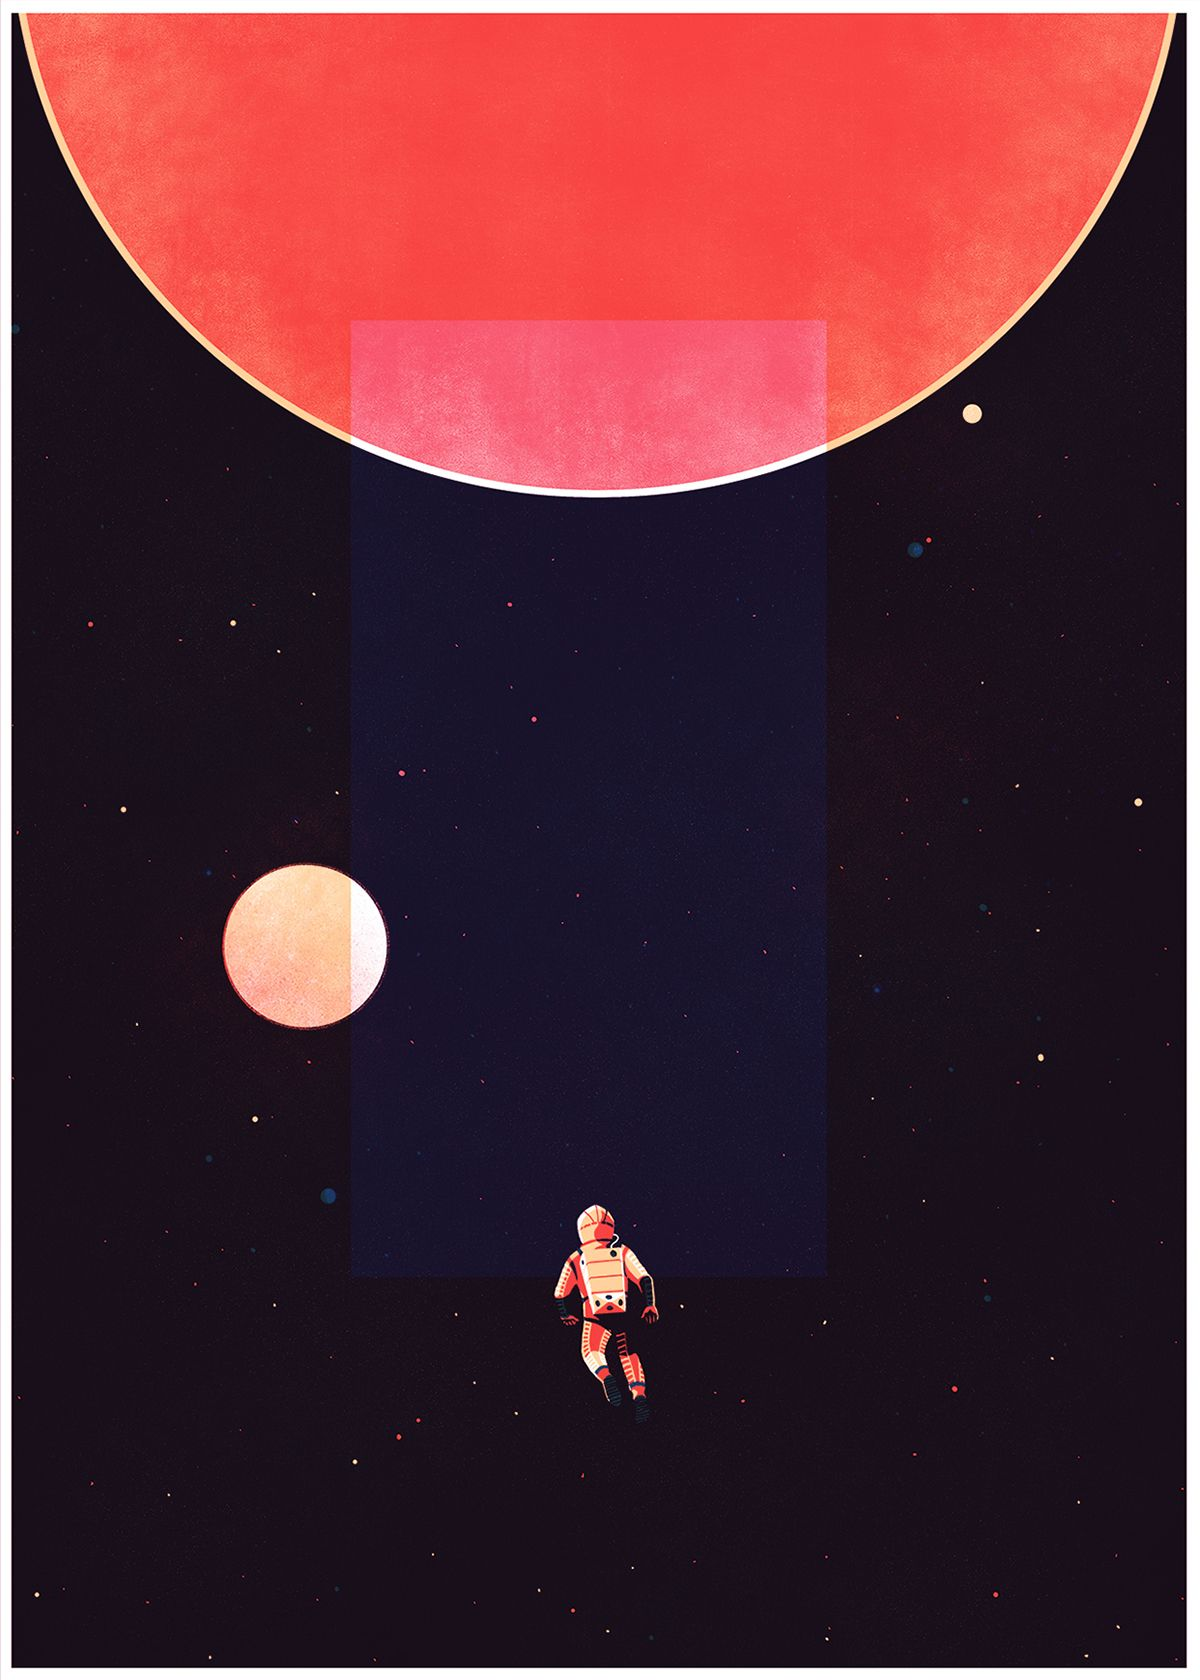 Pin By Mackenzie Pine On Heartstrings Space Odyssey Art 2001 A Space Odyssey Epic Art